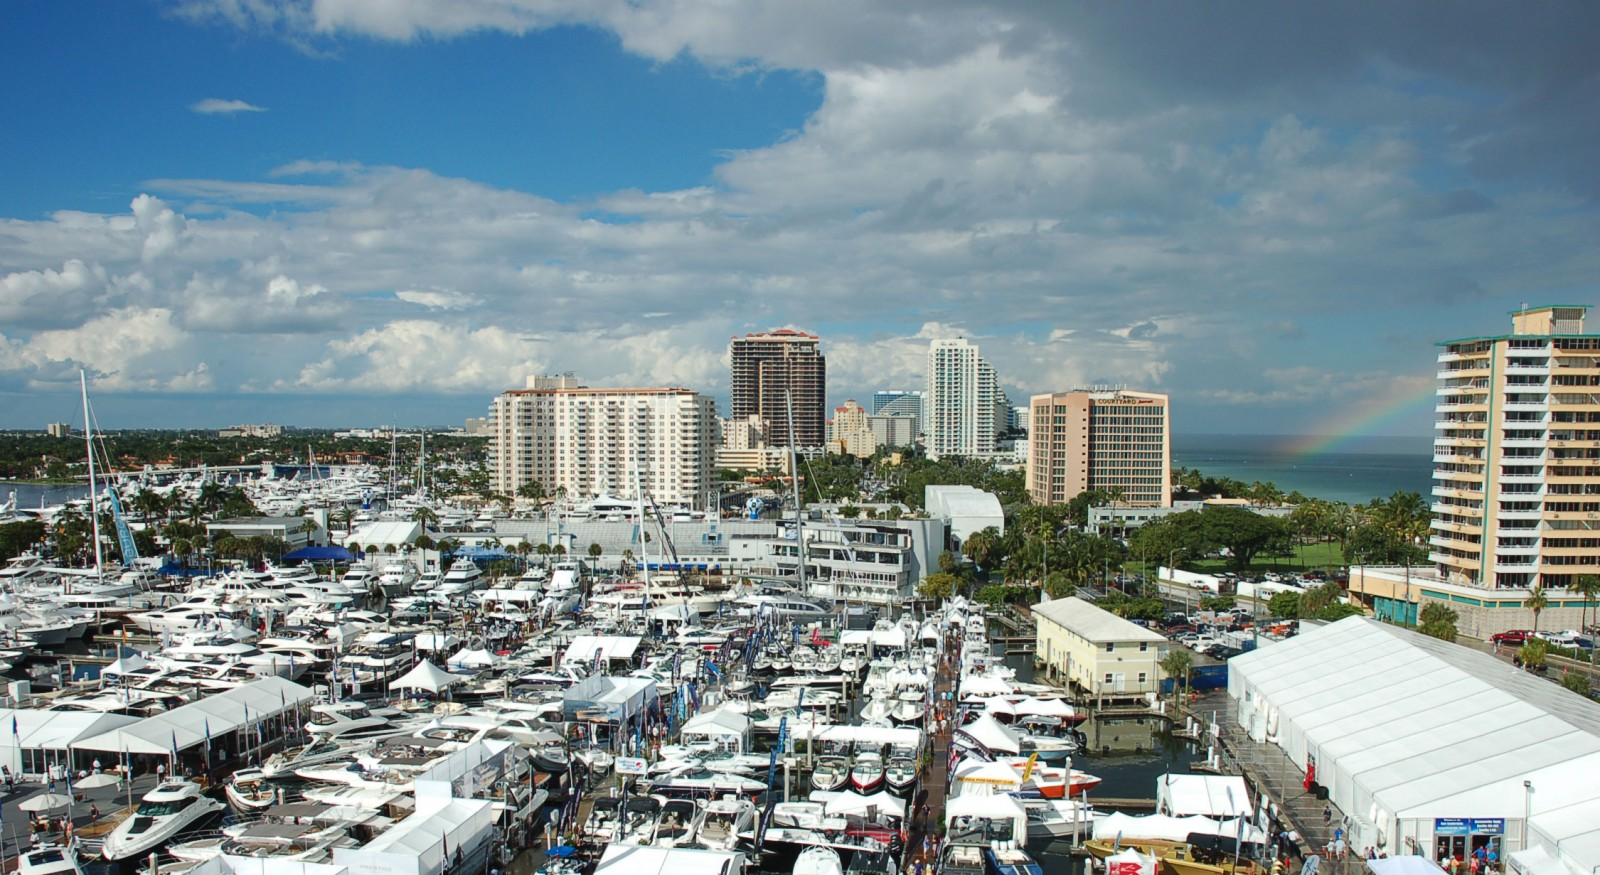 Rainbow to Fort Lauderdale International Boat Show.